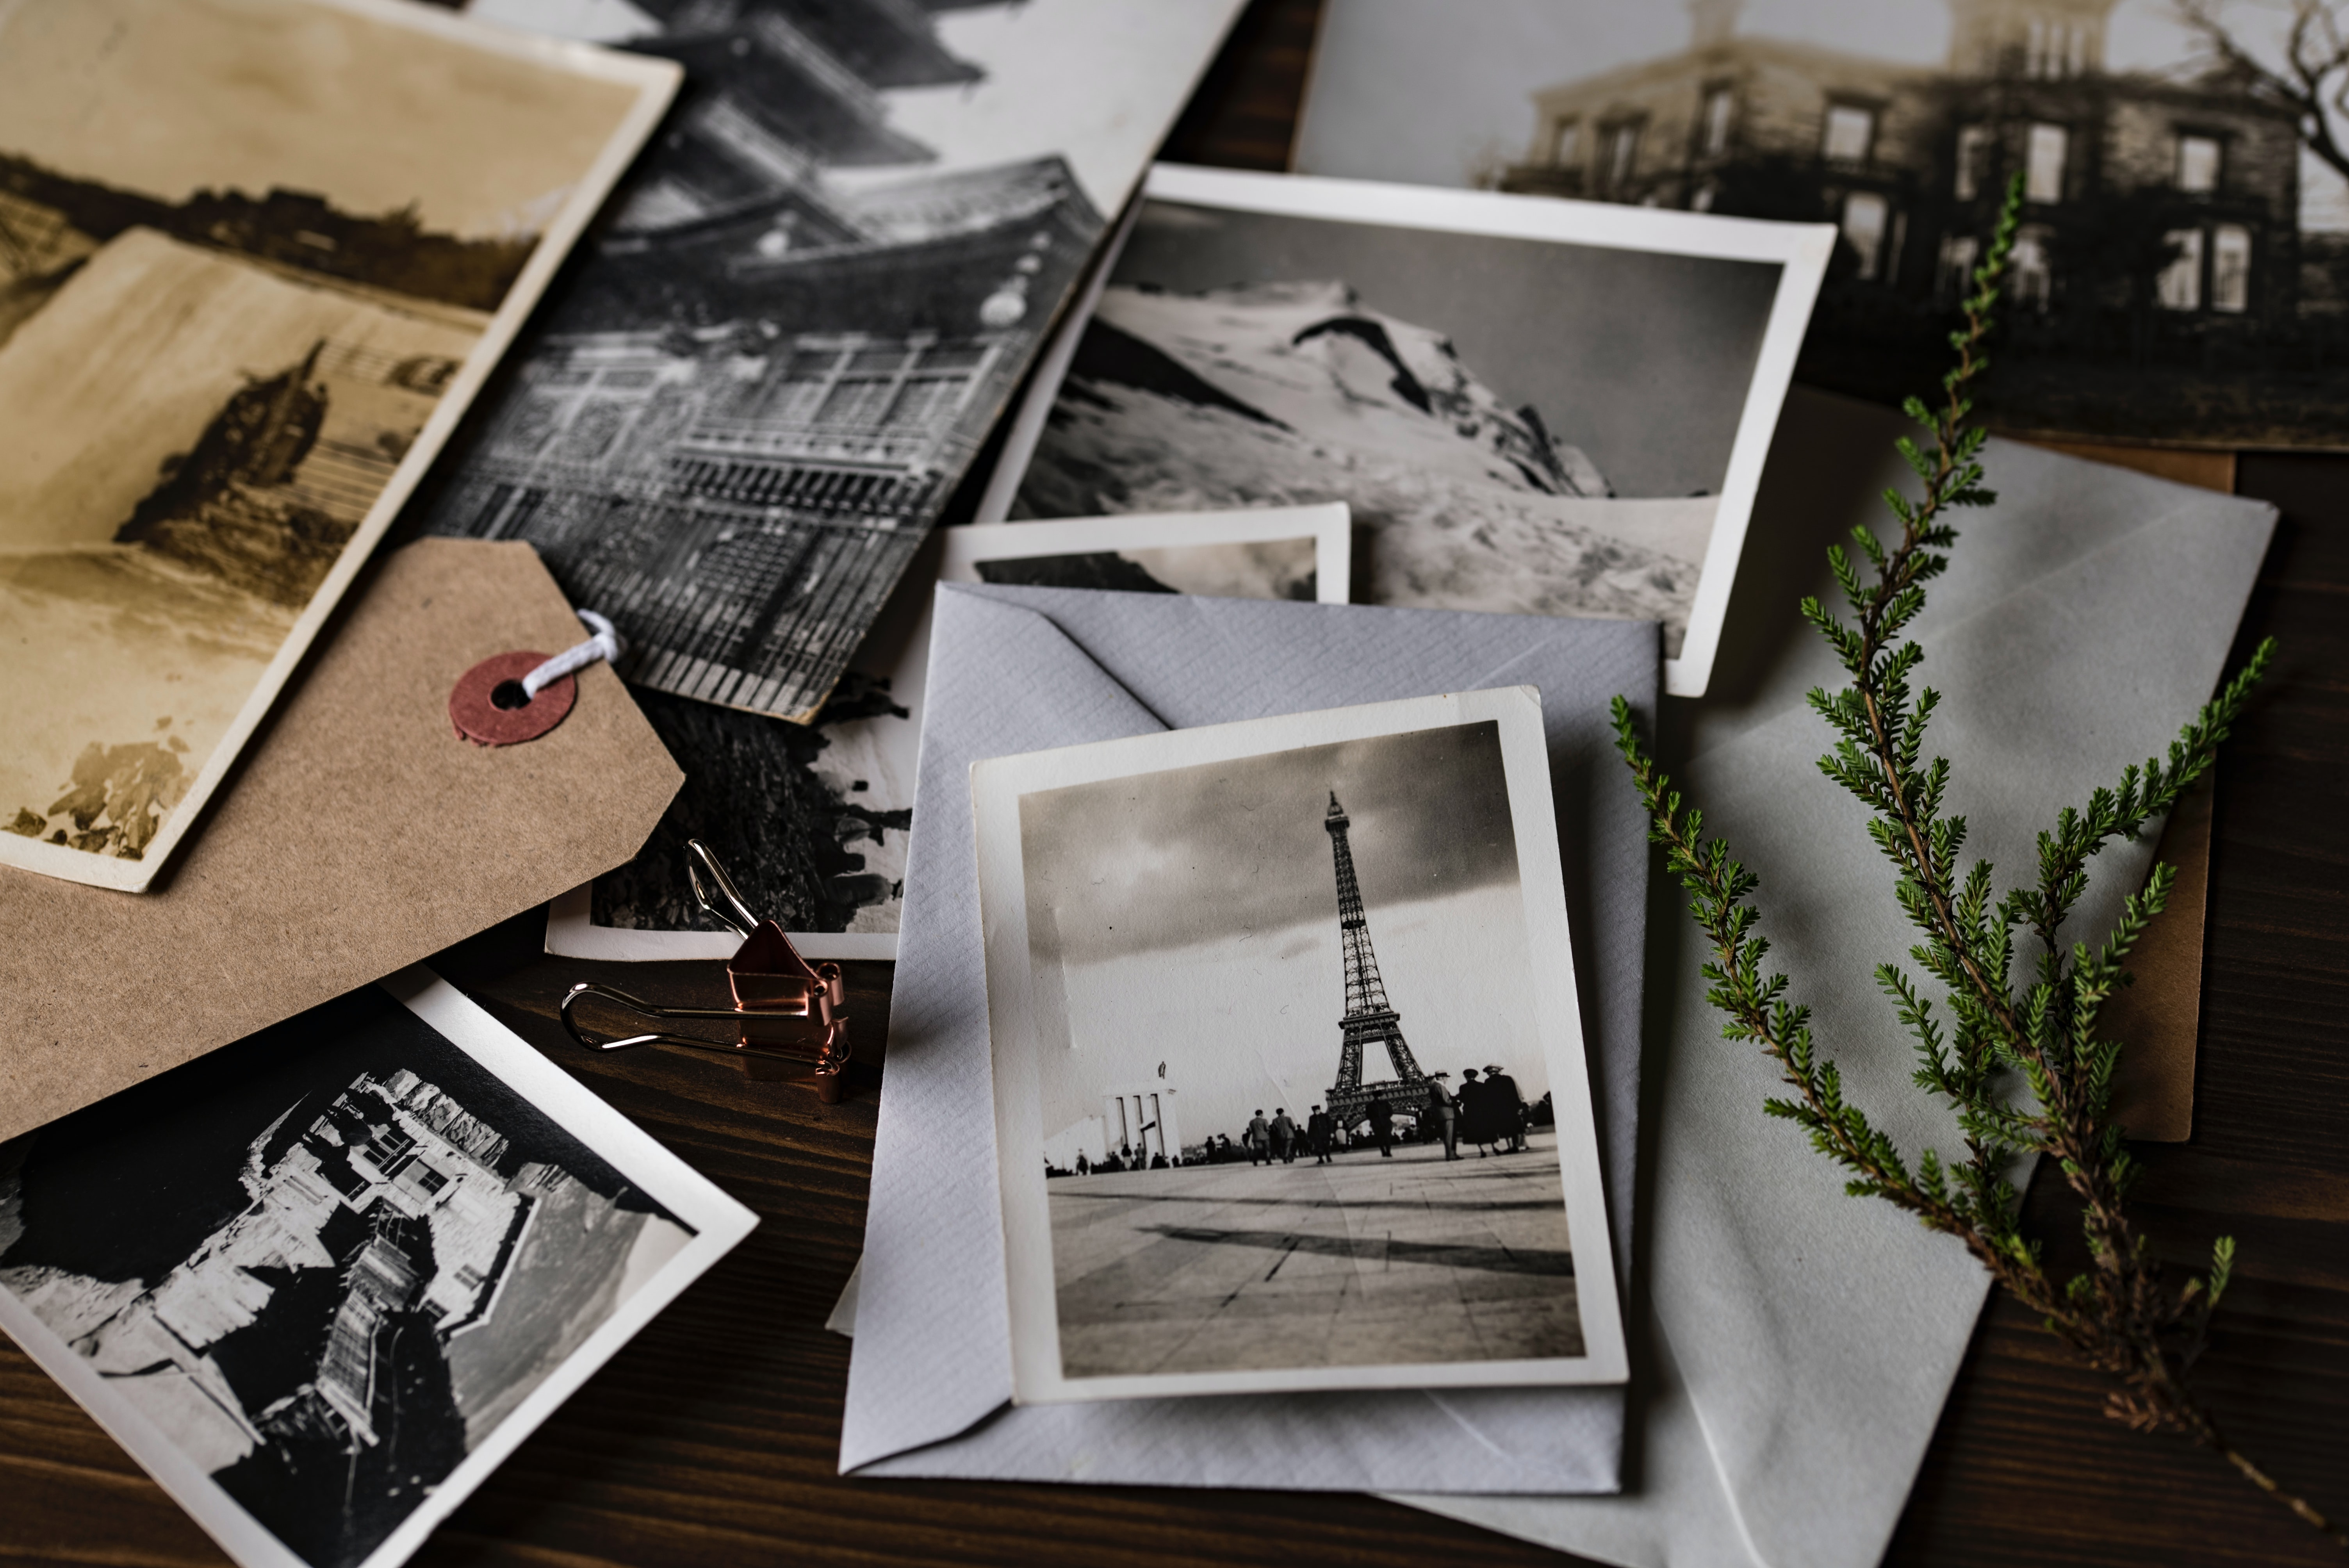 a pile of Old black and white photos